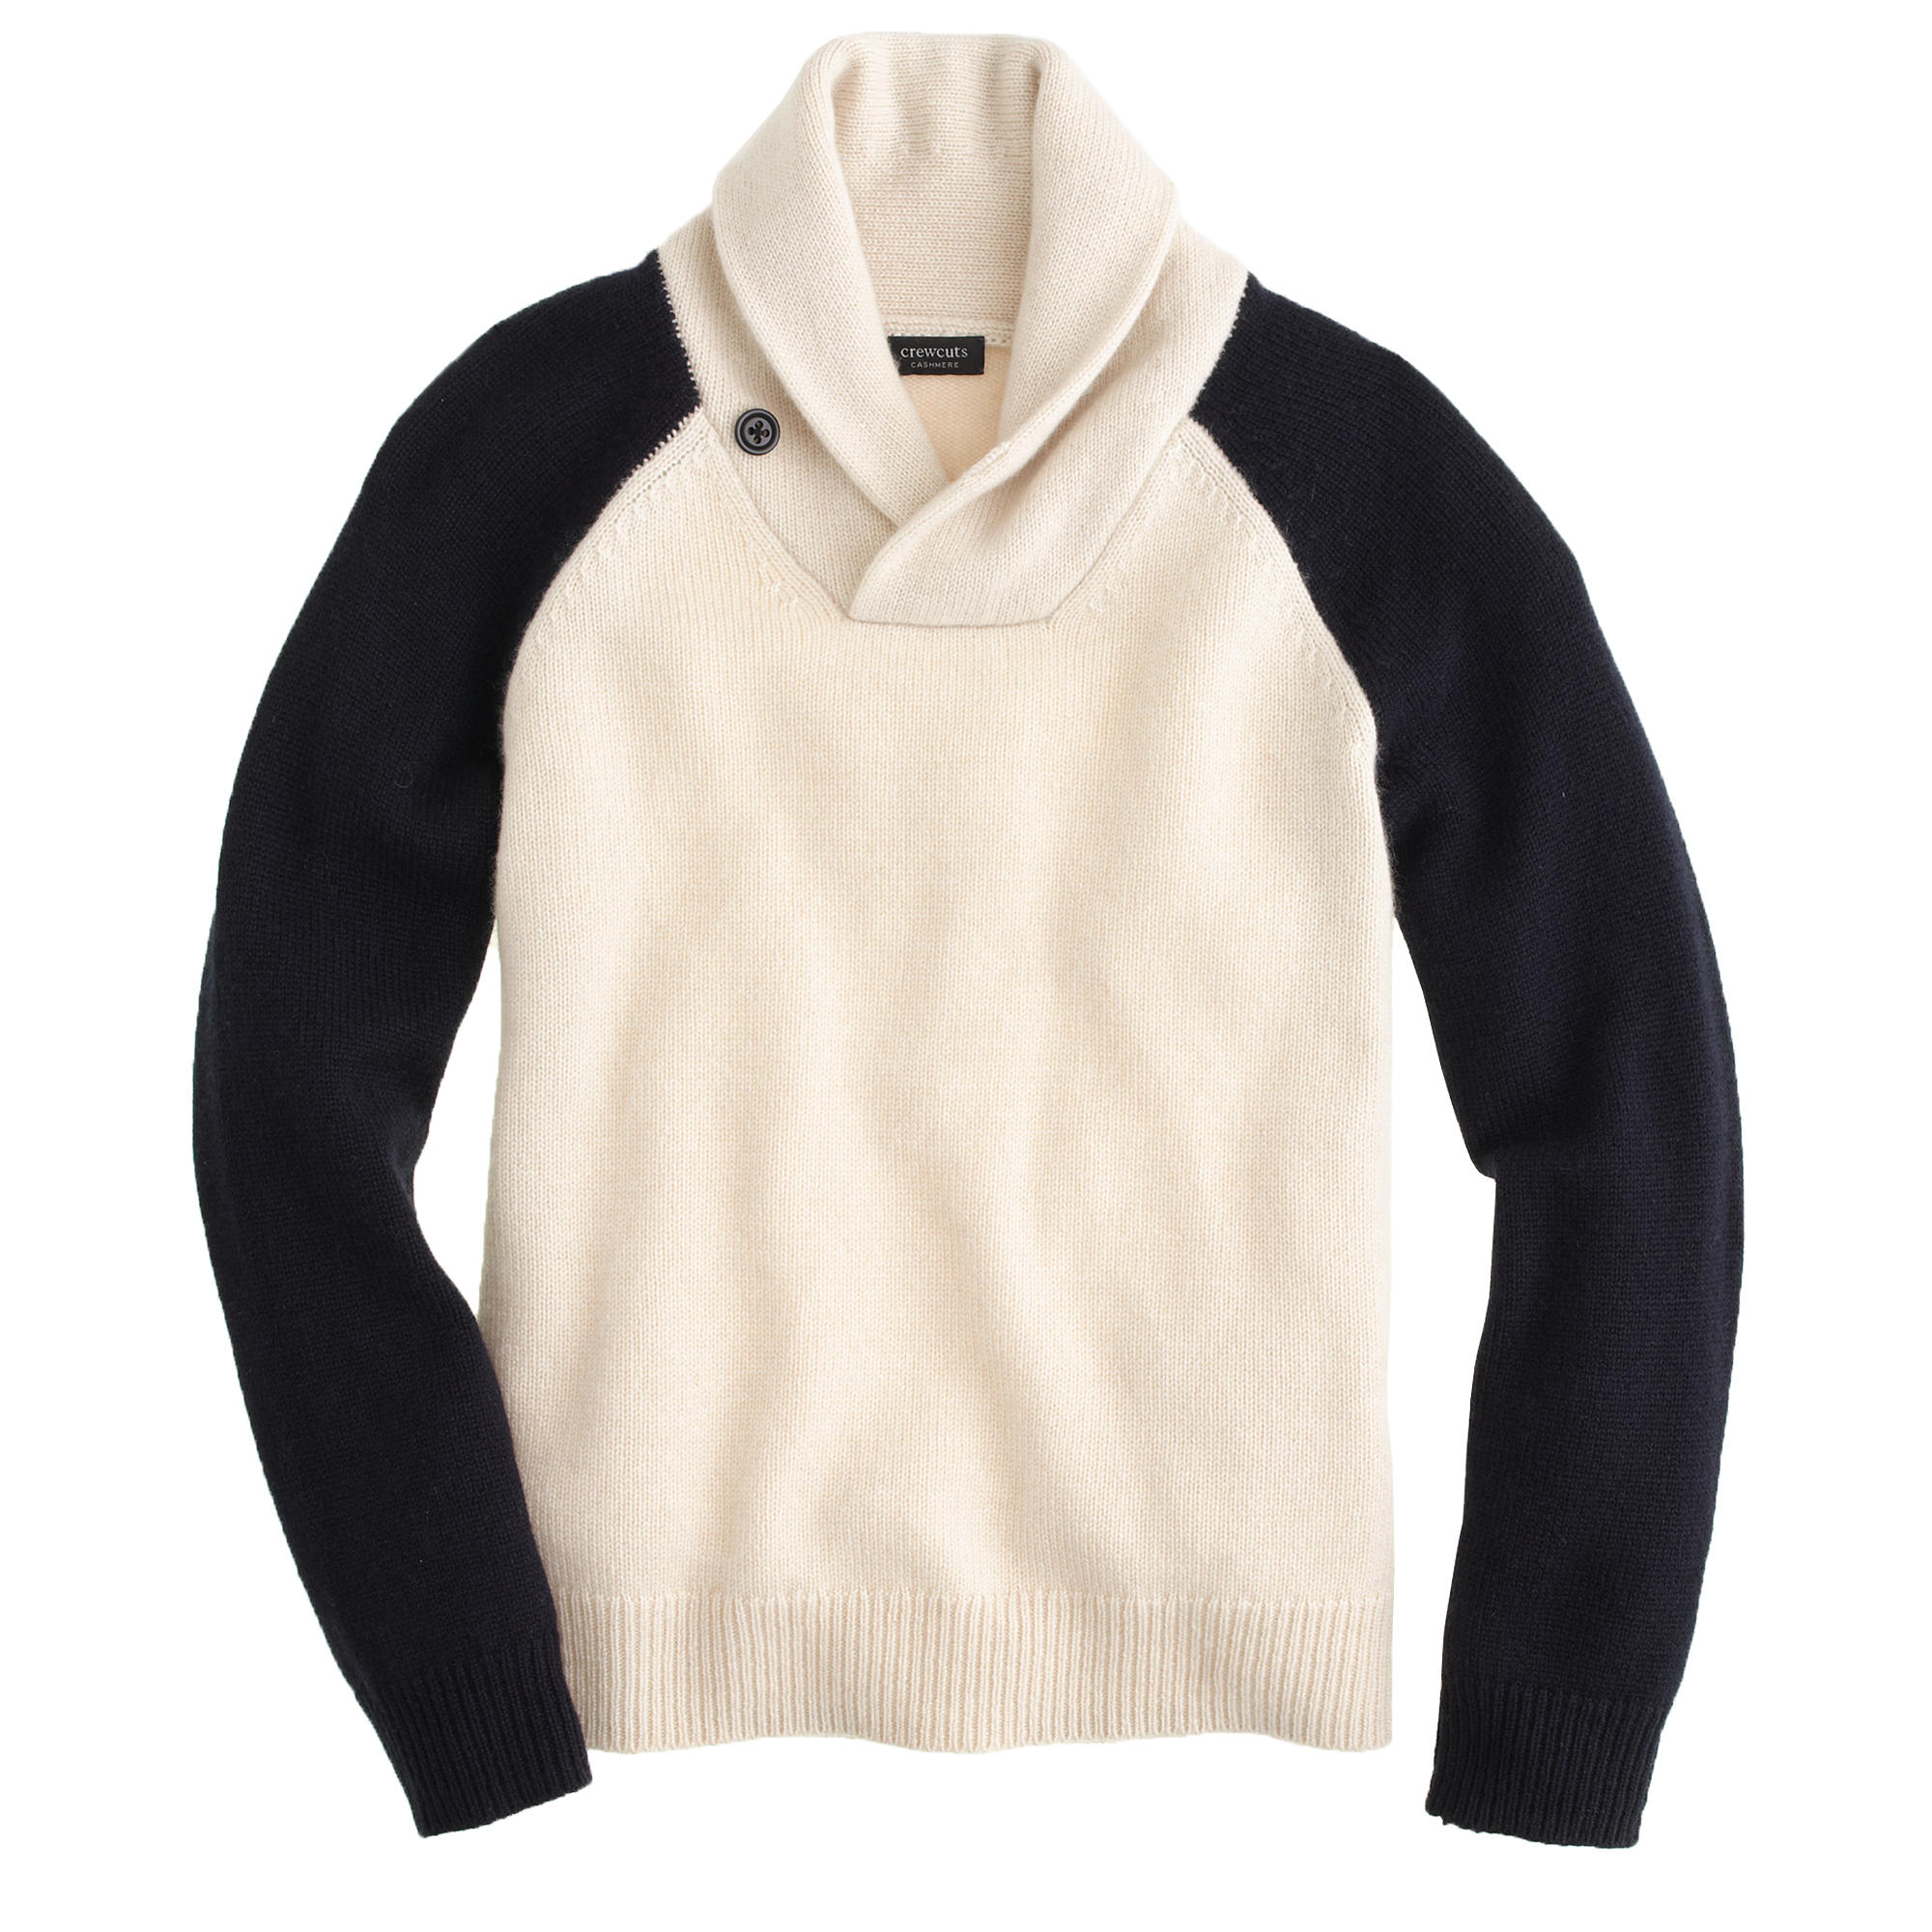 Boys' cashmere contrast-sleeve shawl-collar sweater :